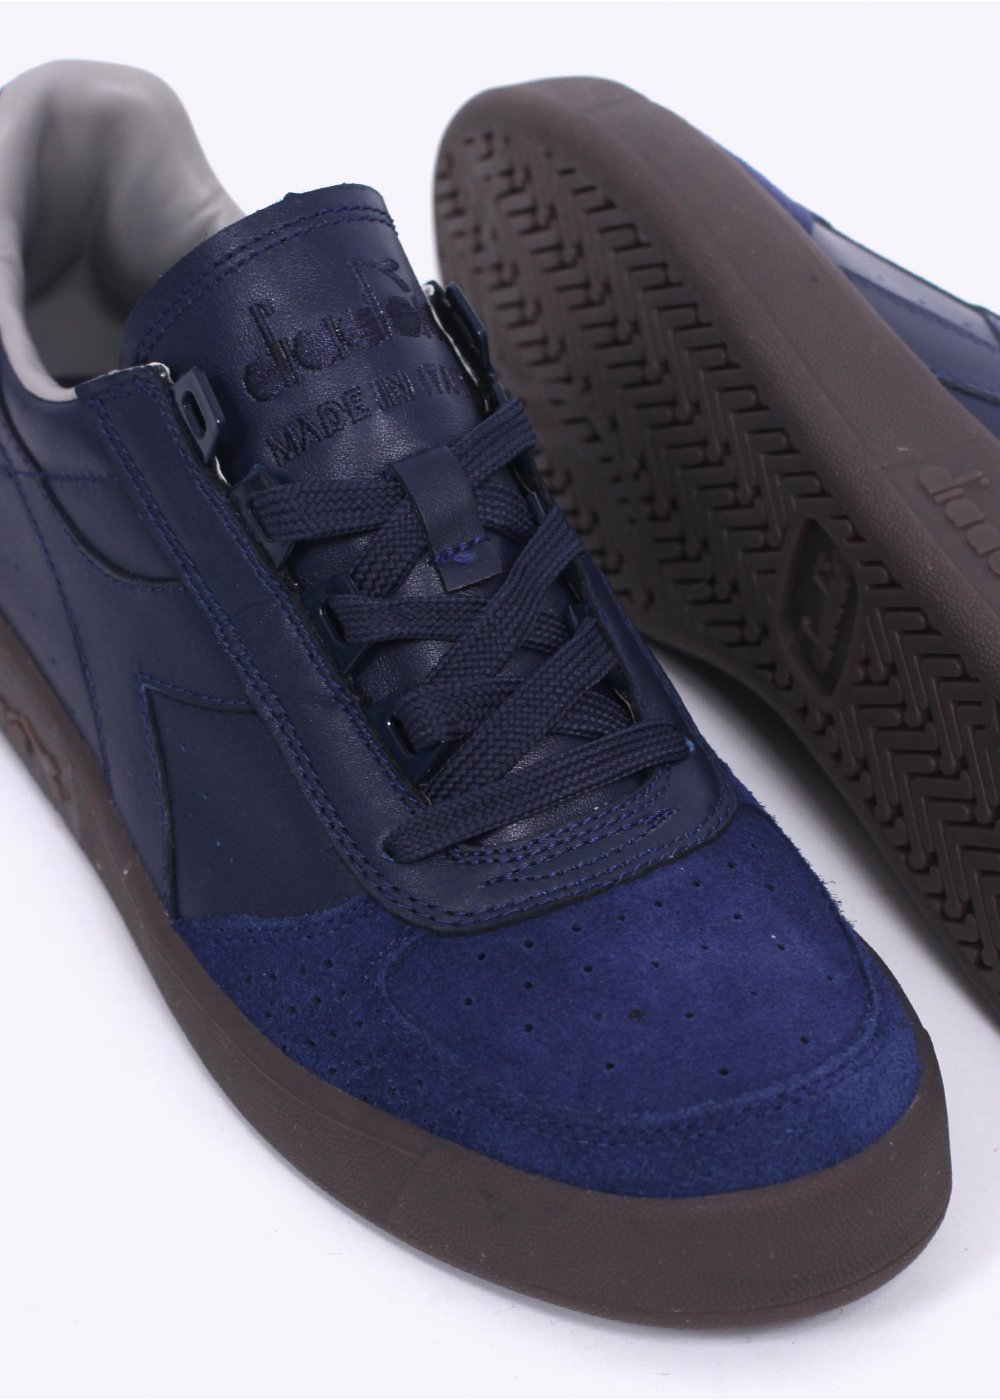 Borg Elite S 'Made in Italy' Trainers - Deep